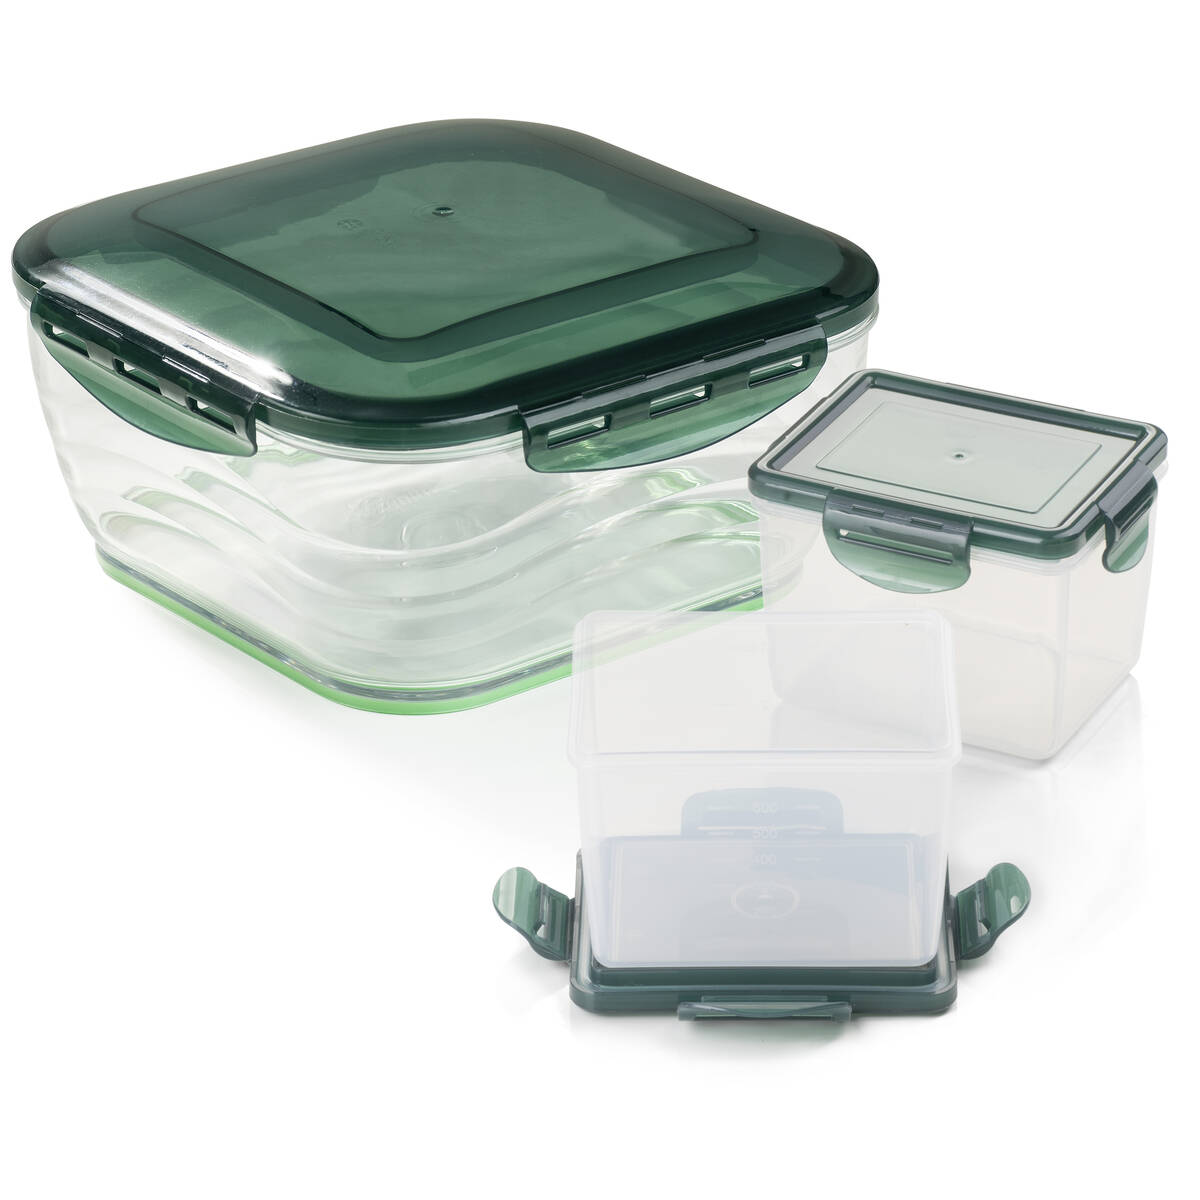 nicer dicer chef set 15 teilig bei westfalia versand schweiz. Black Bedroom Furniture Sets. Home Design Ideas